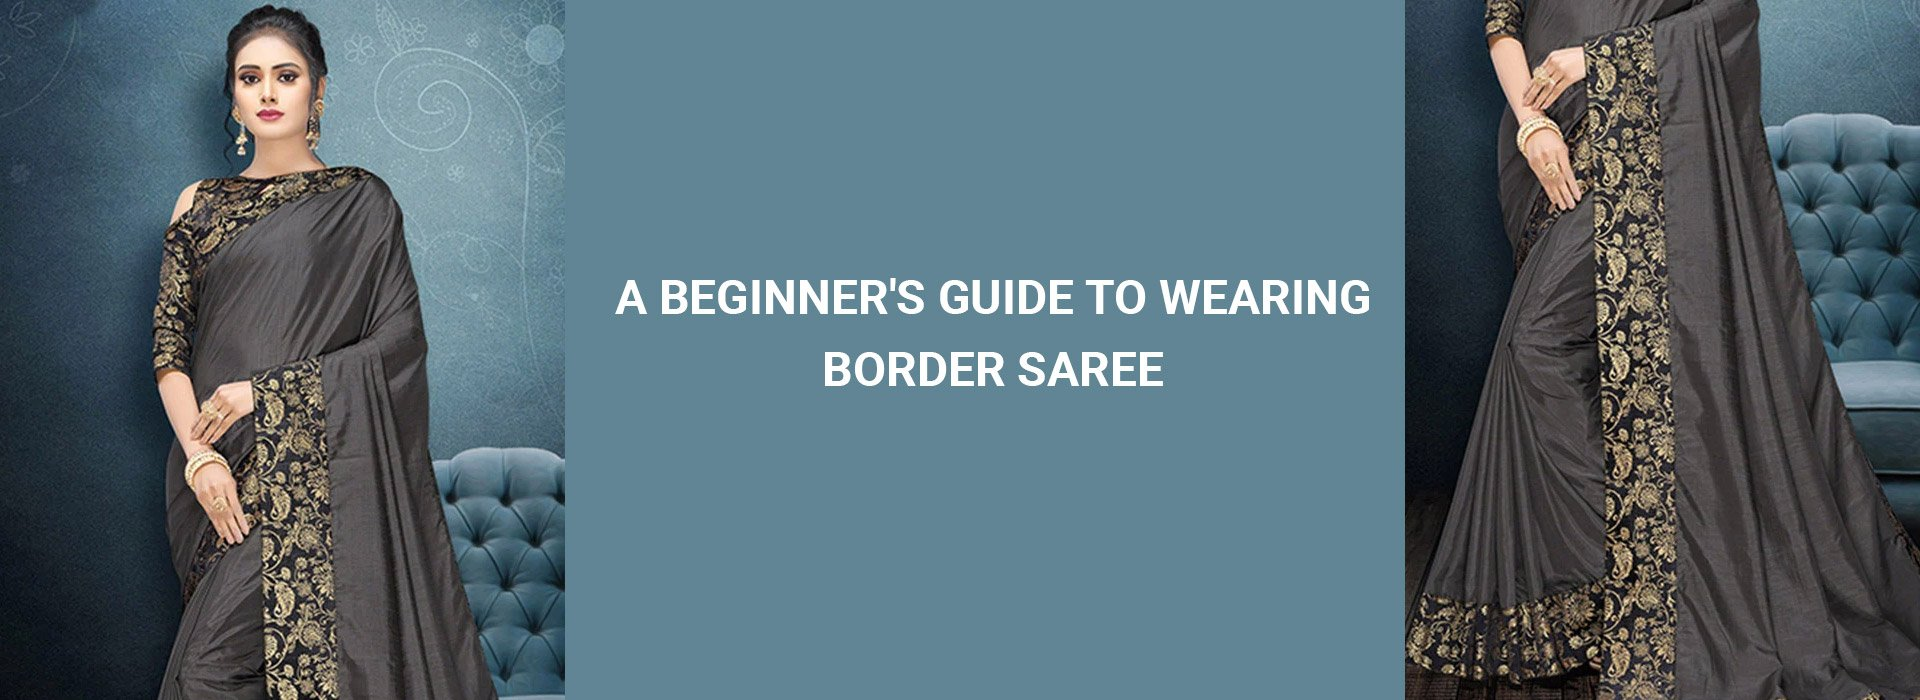 A Beginner's Guide to Wearing Border Saree